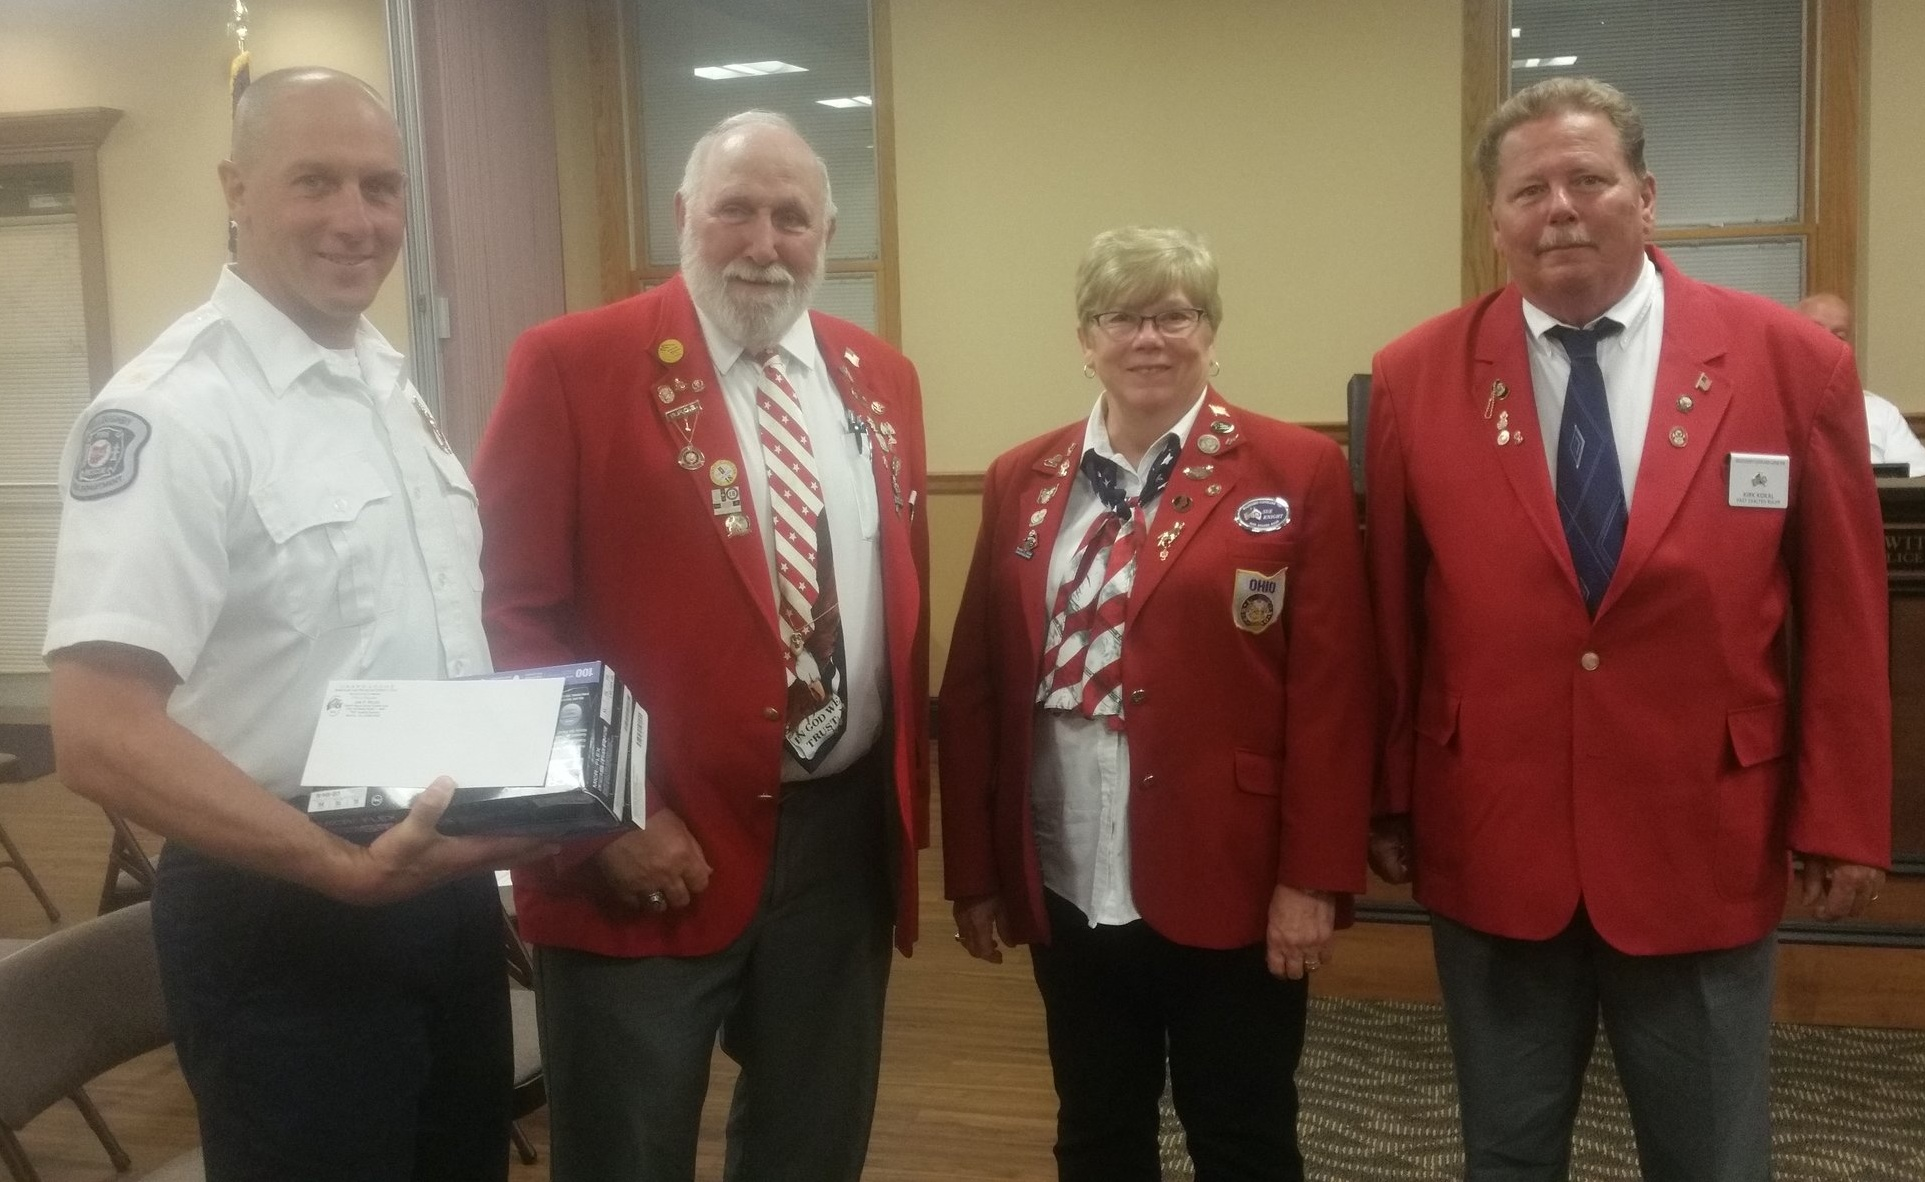 Shown with Chief Todd Unger representing the Lodge are (from left) PER Larry Clement, PER Sue Knight and PER Kirk Kokal.